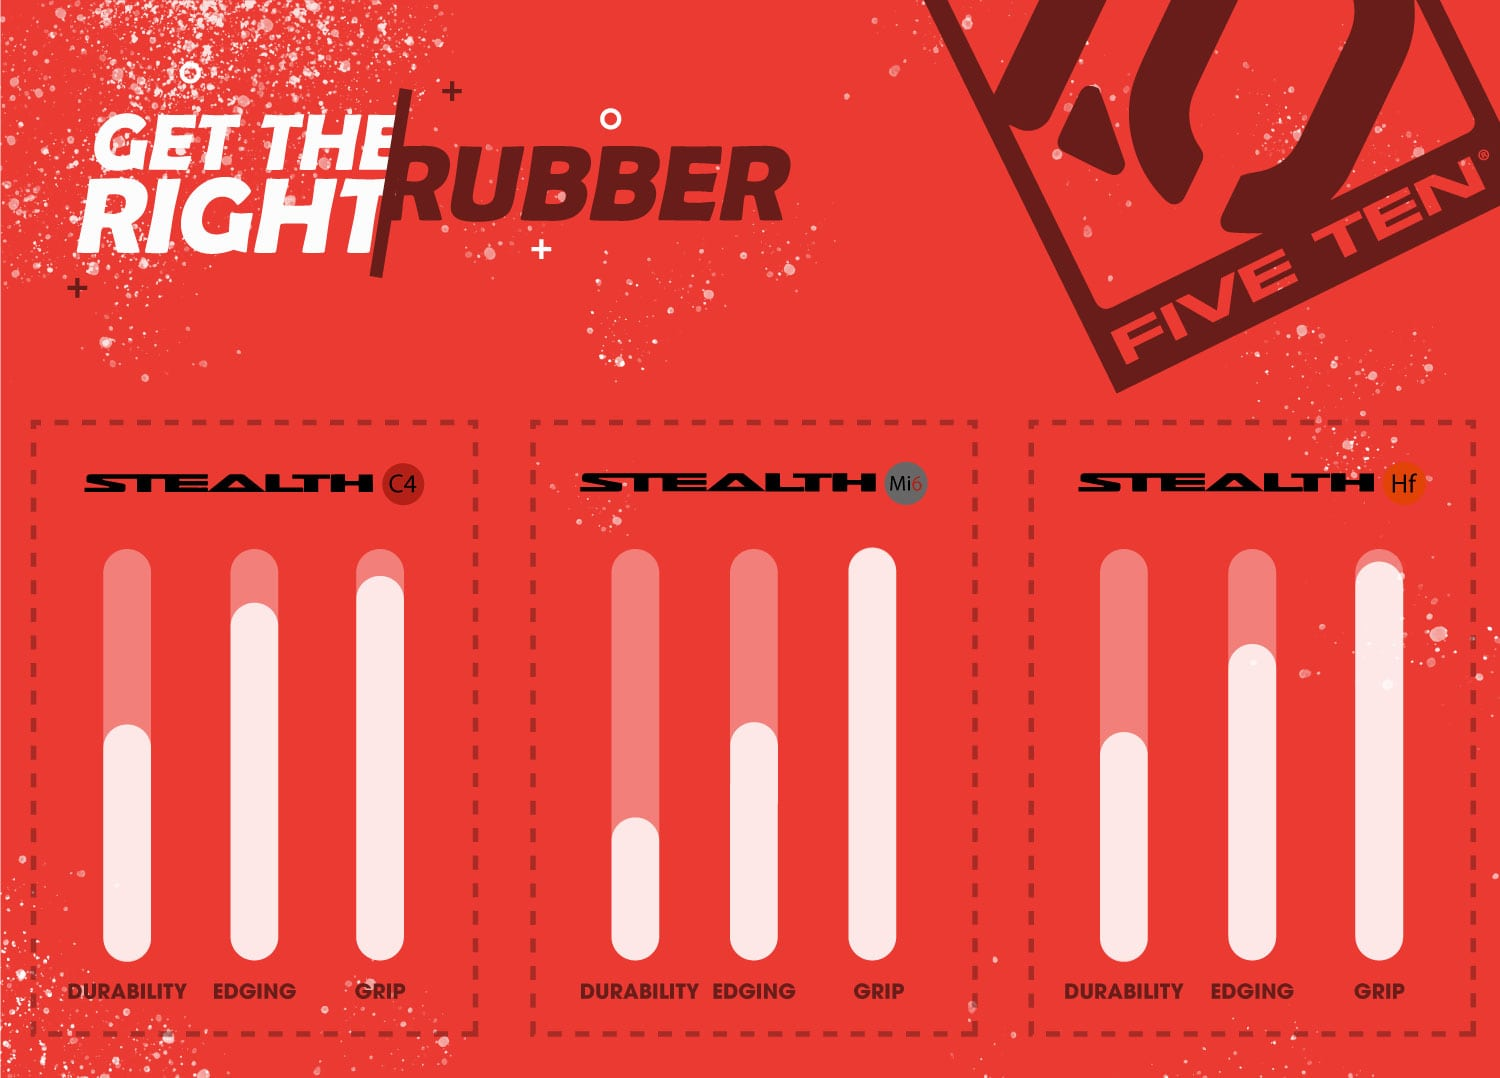 Stealth C4 Rubber vs Stealth Hf Rubber